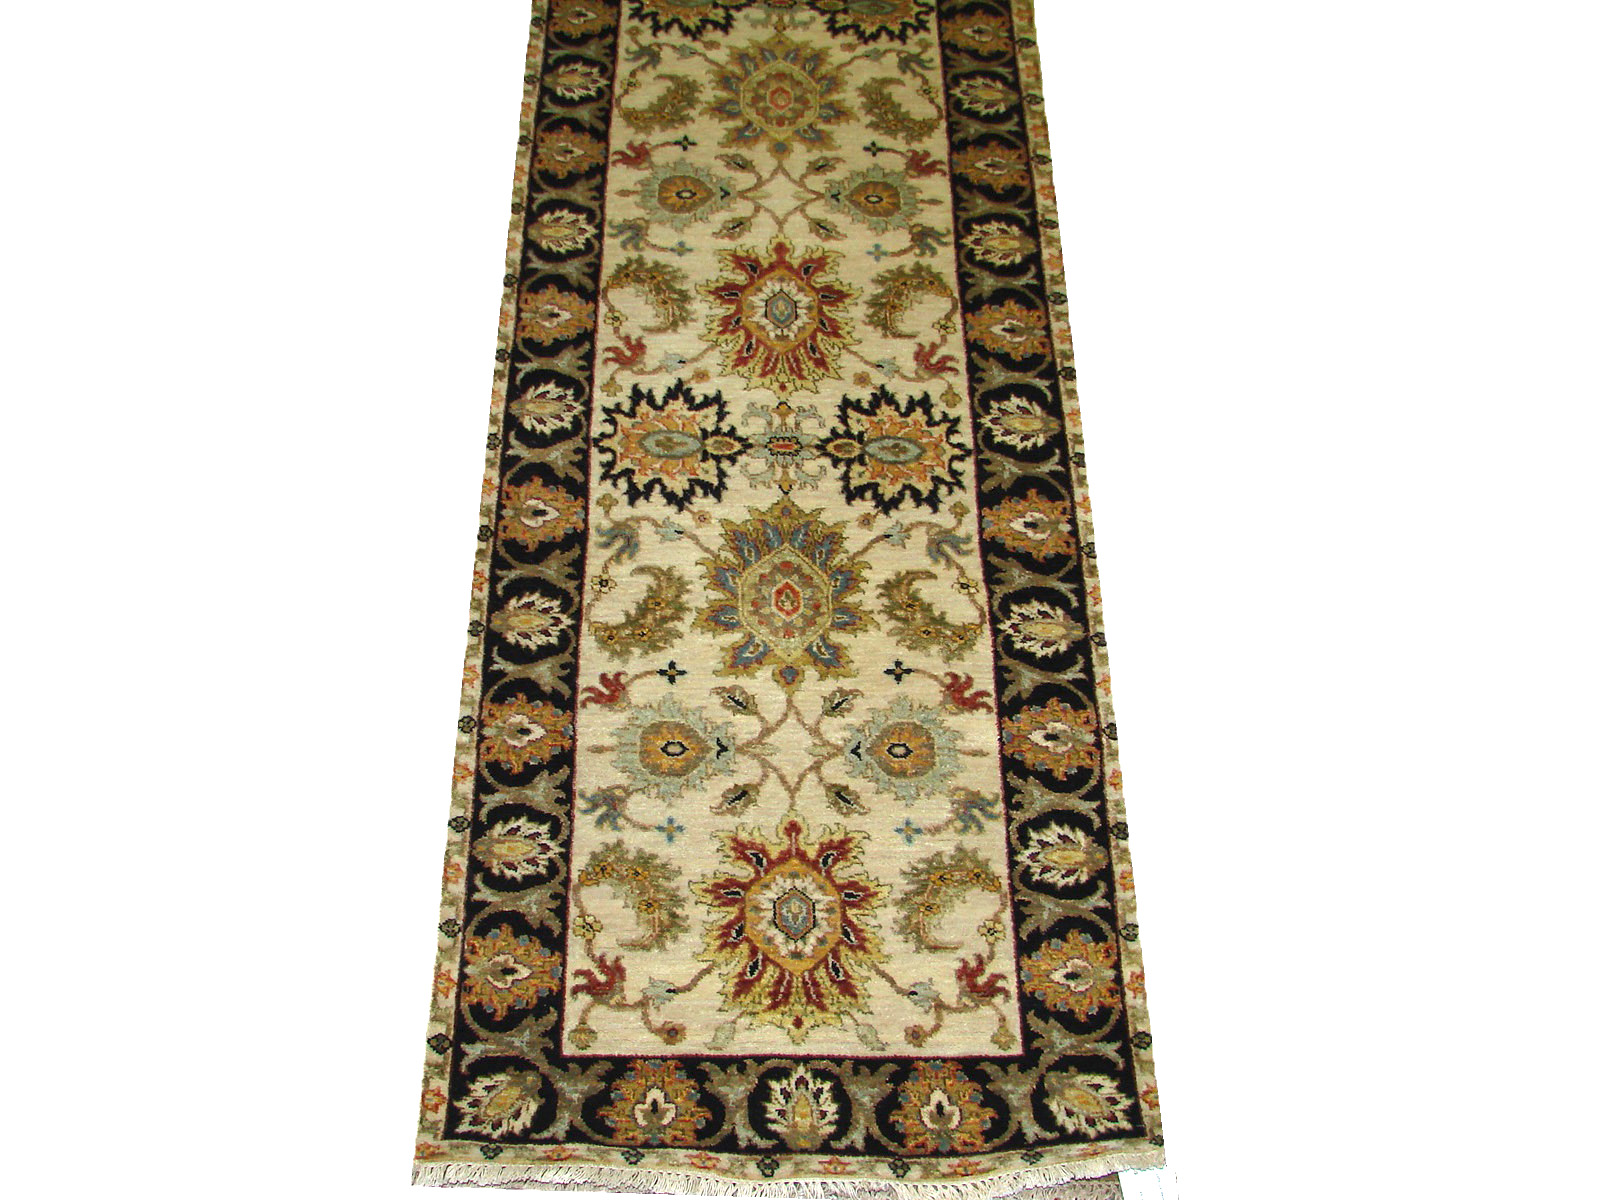 13 & Longer Runner Traditional Hand Knotted Wool Area Rug - MR21206